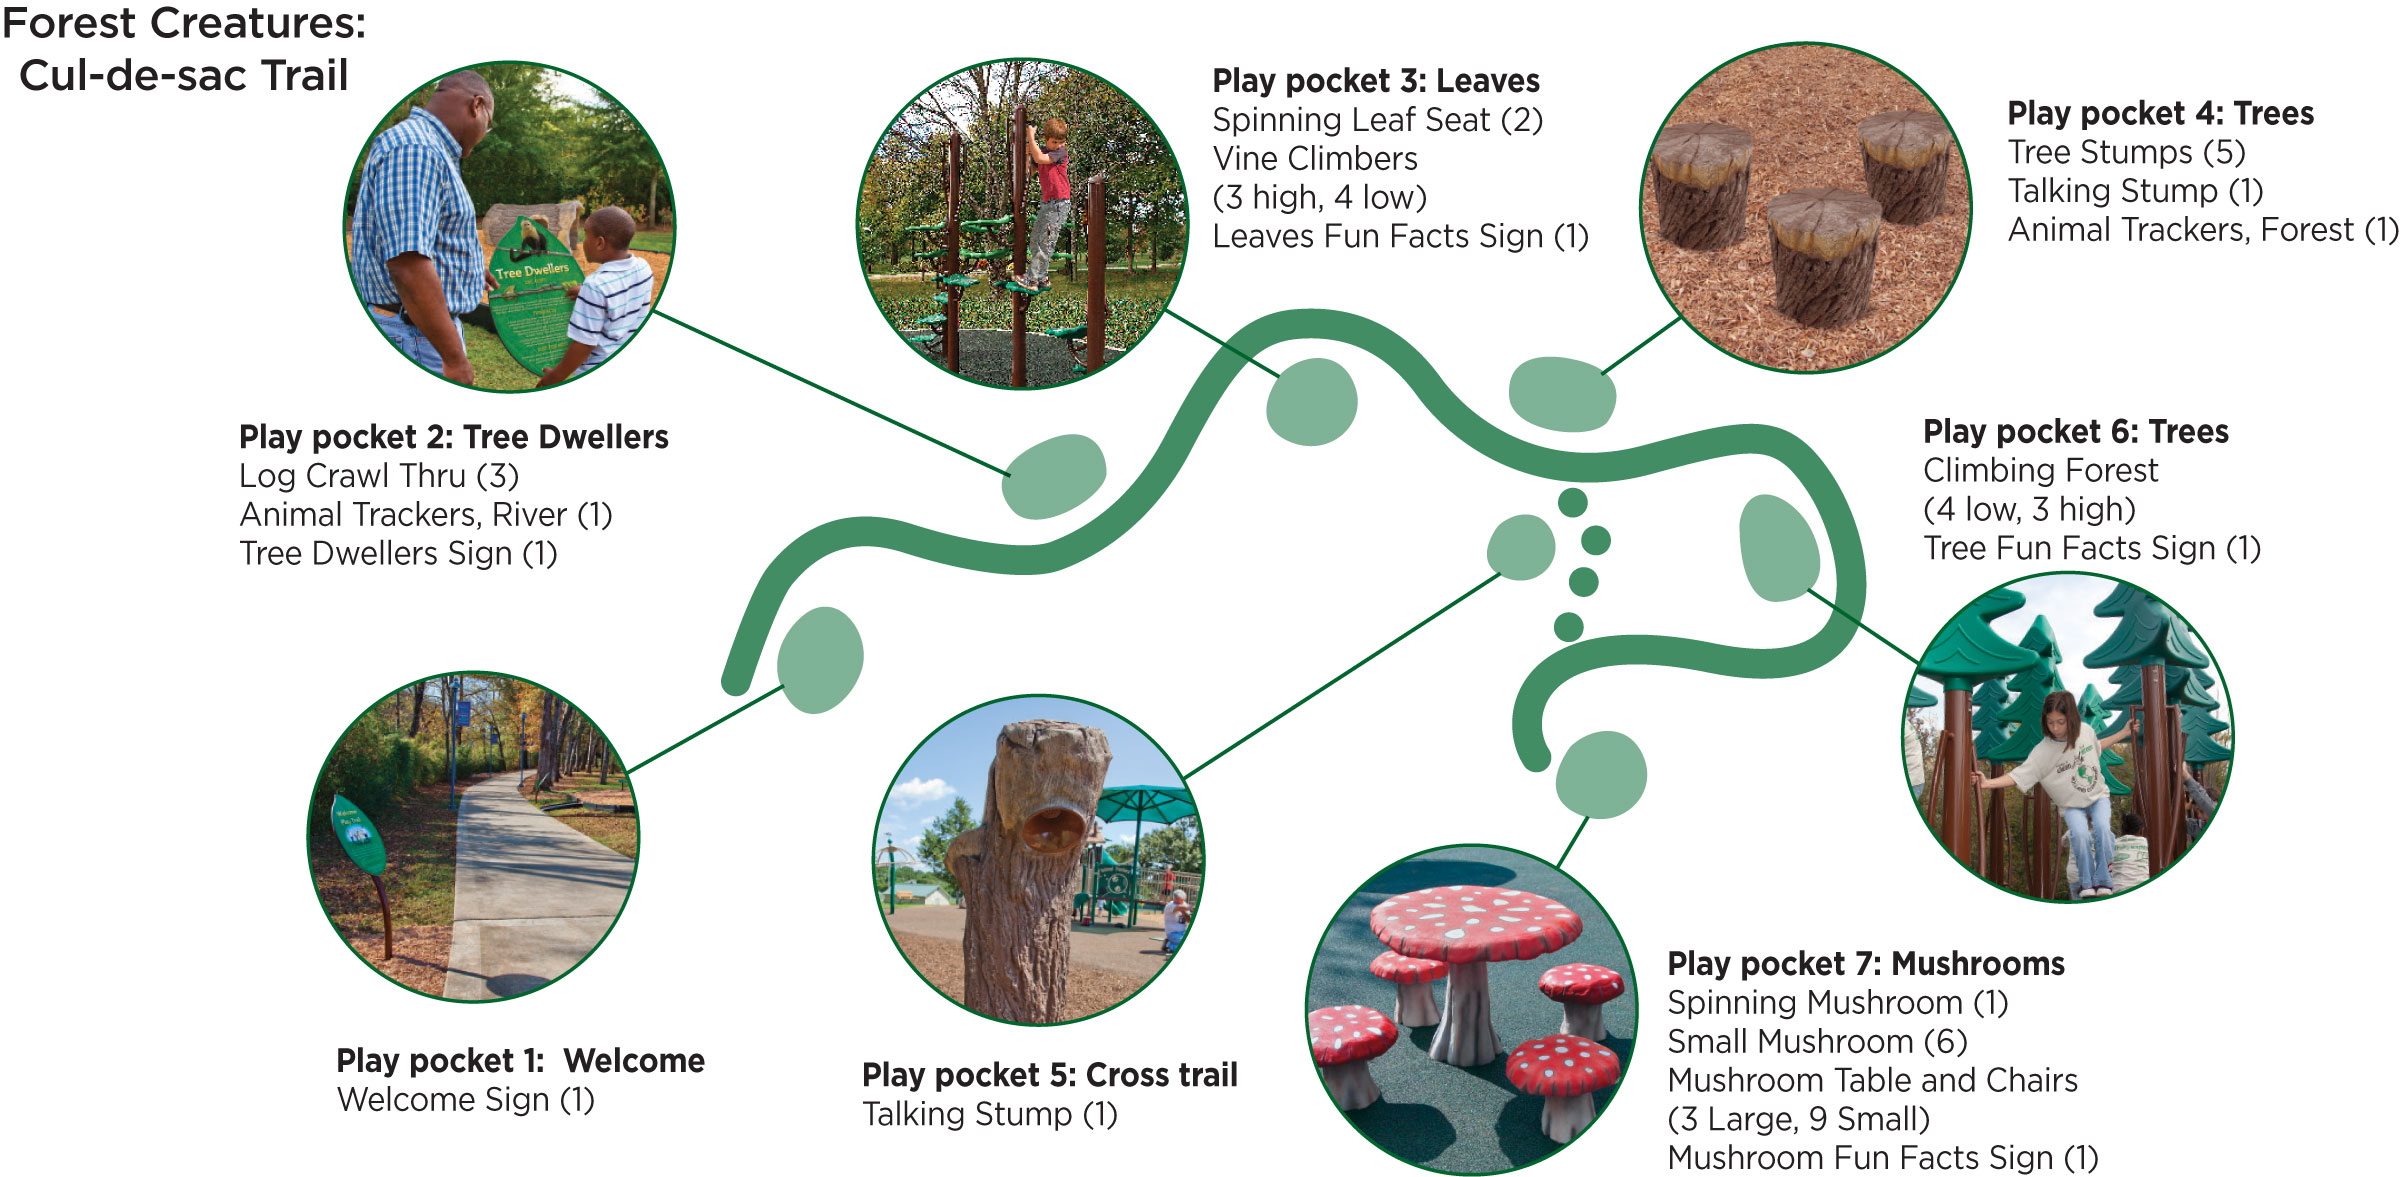 There are many ways to build natural playgrounds. Add PlayTrails natural playground equipment to your greenway to create pockets of play.